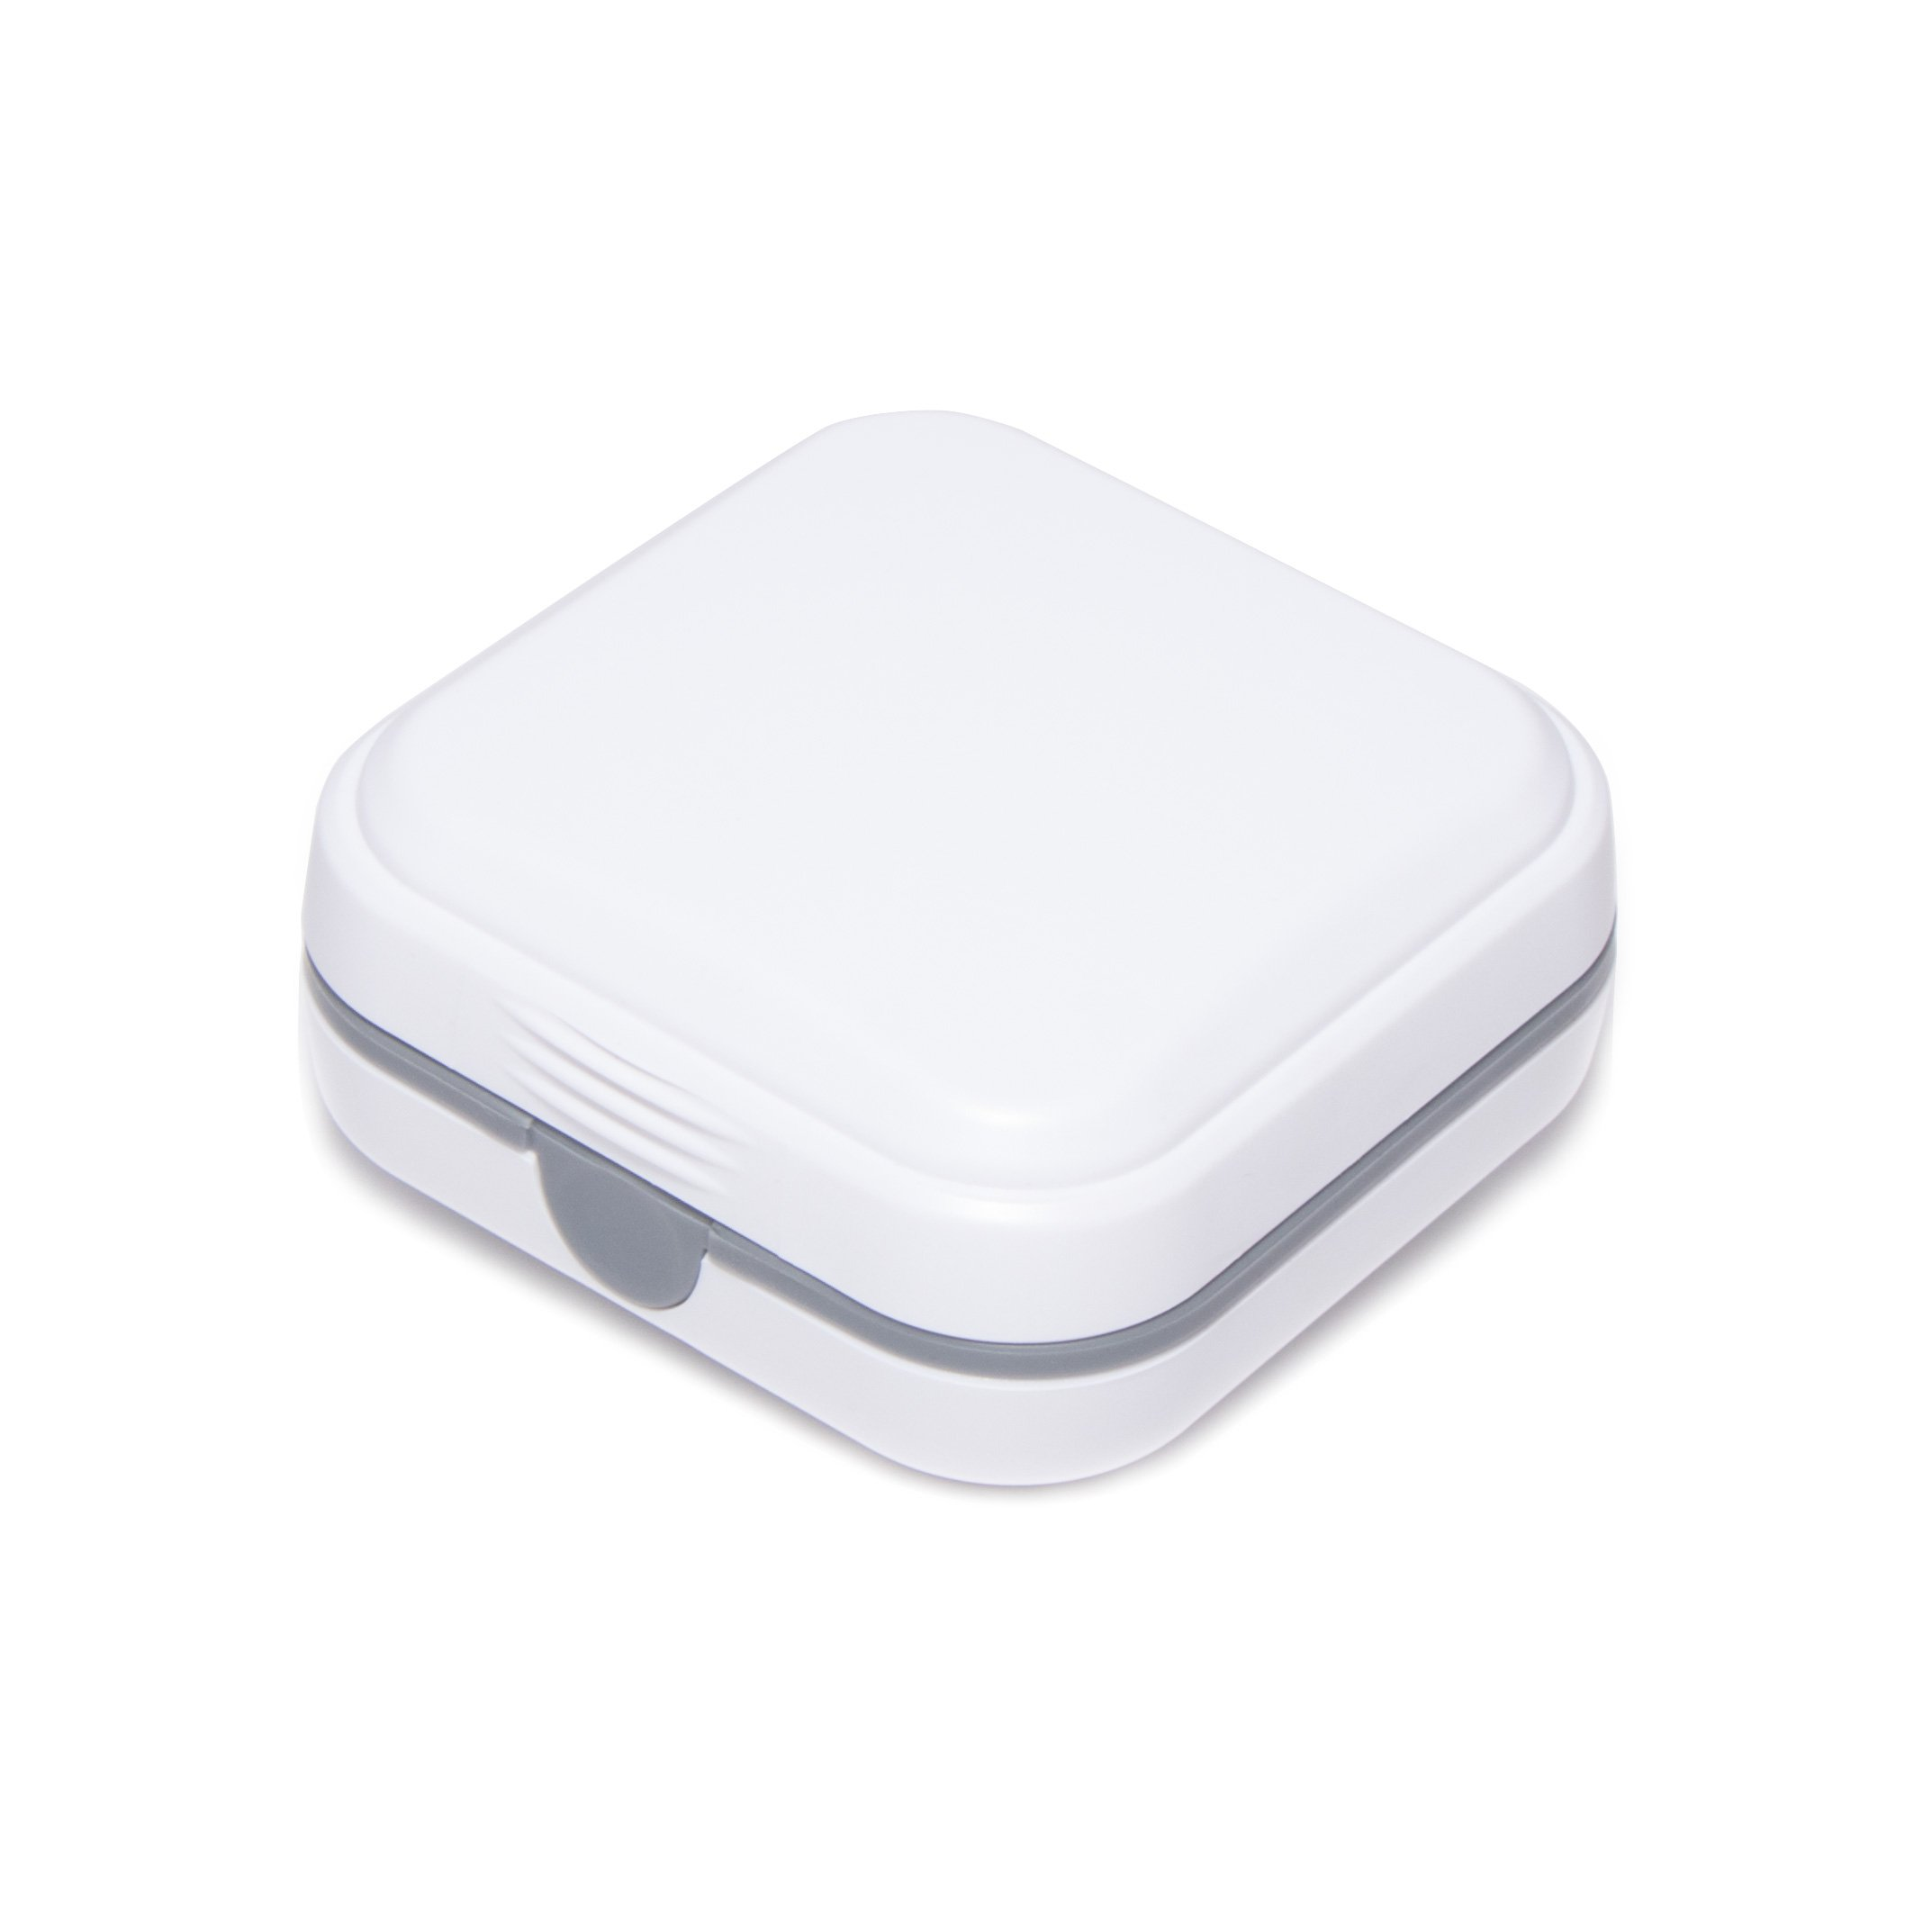 Durable Hearing Amplifier Storage Case - Ideal for CIC ITE BTE RIC Hearing Aid/Small Electronic Device, White